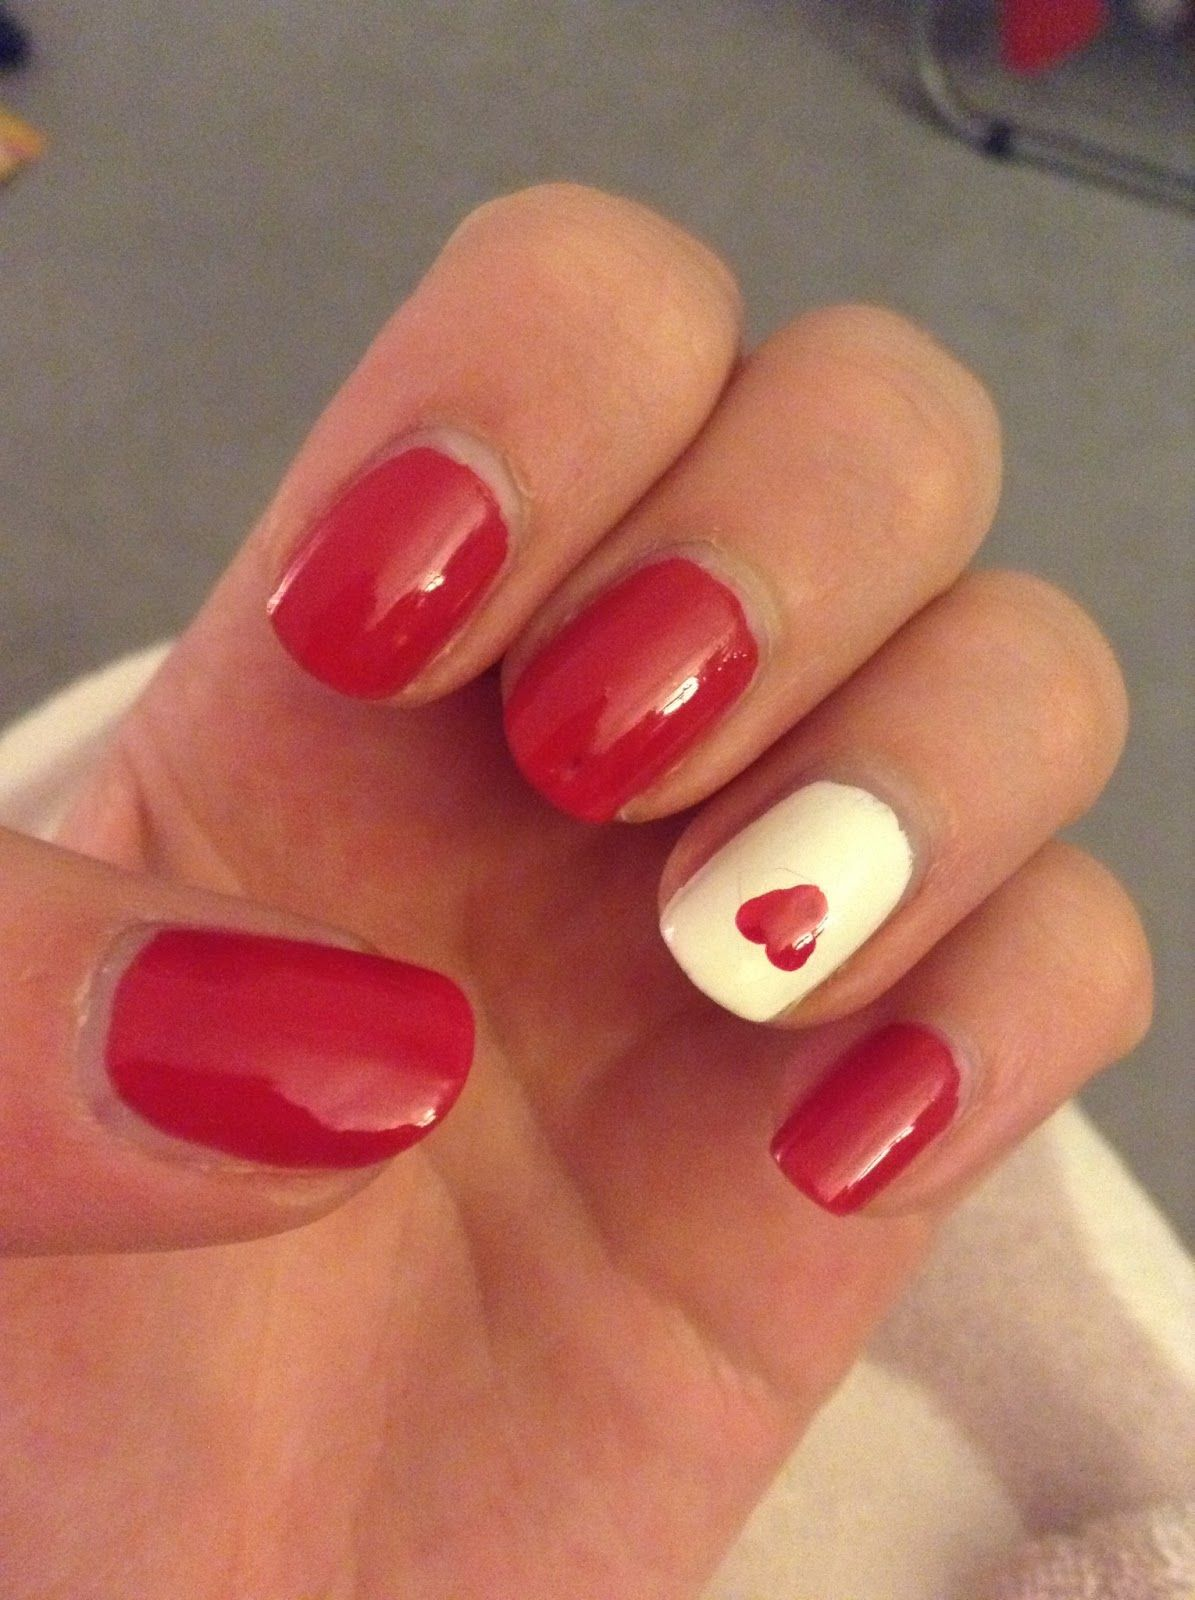 Nail Design Art 2015 Latest Nail Art Fashion For Girls